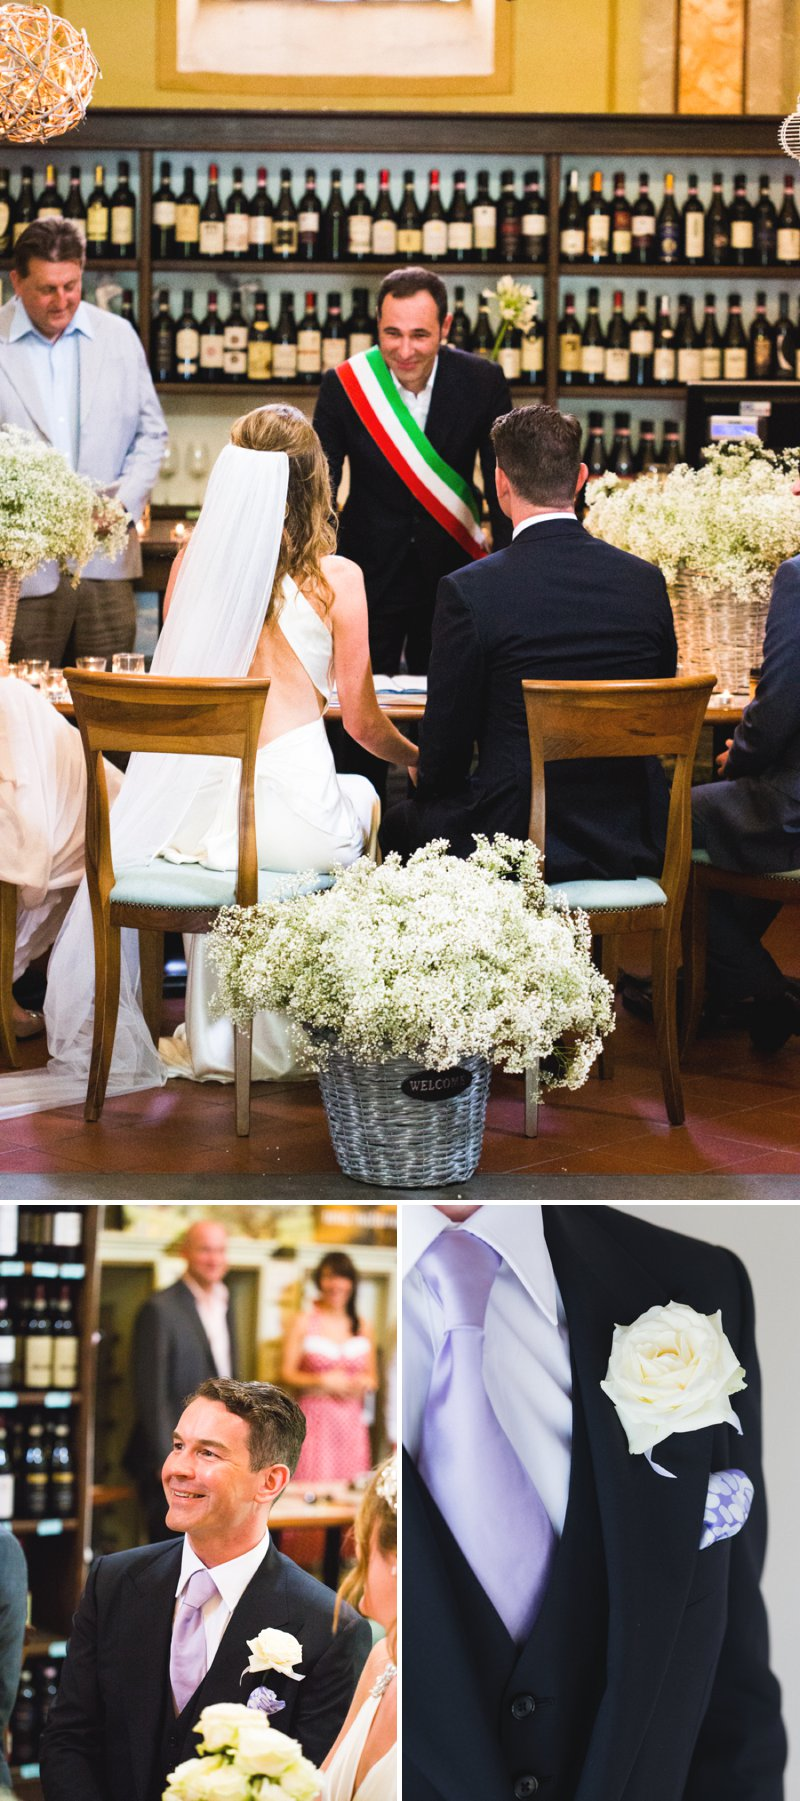 Elegant Wedding In Italy At The Locanda del Pilone Hotel And Restaurant With Bride In Julianne By Jenny Packham And Groom In Tom Ford Suit With A Five Course Italian Banquet 4